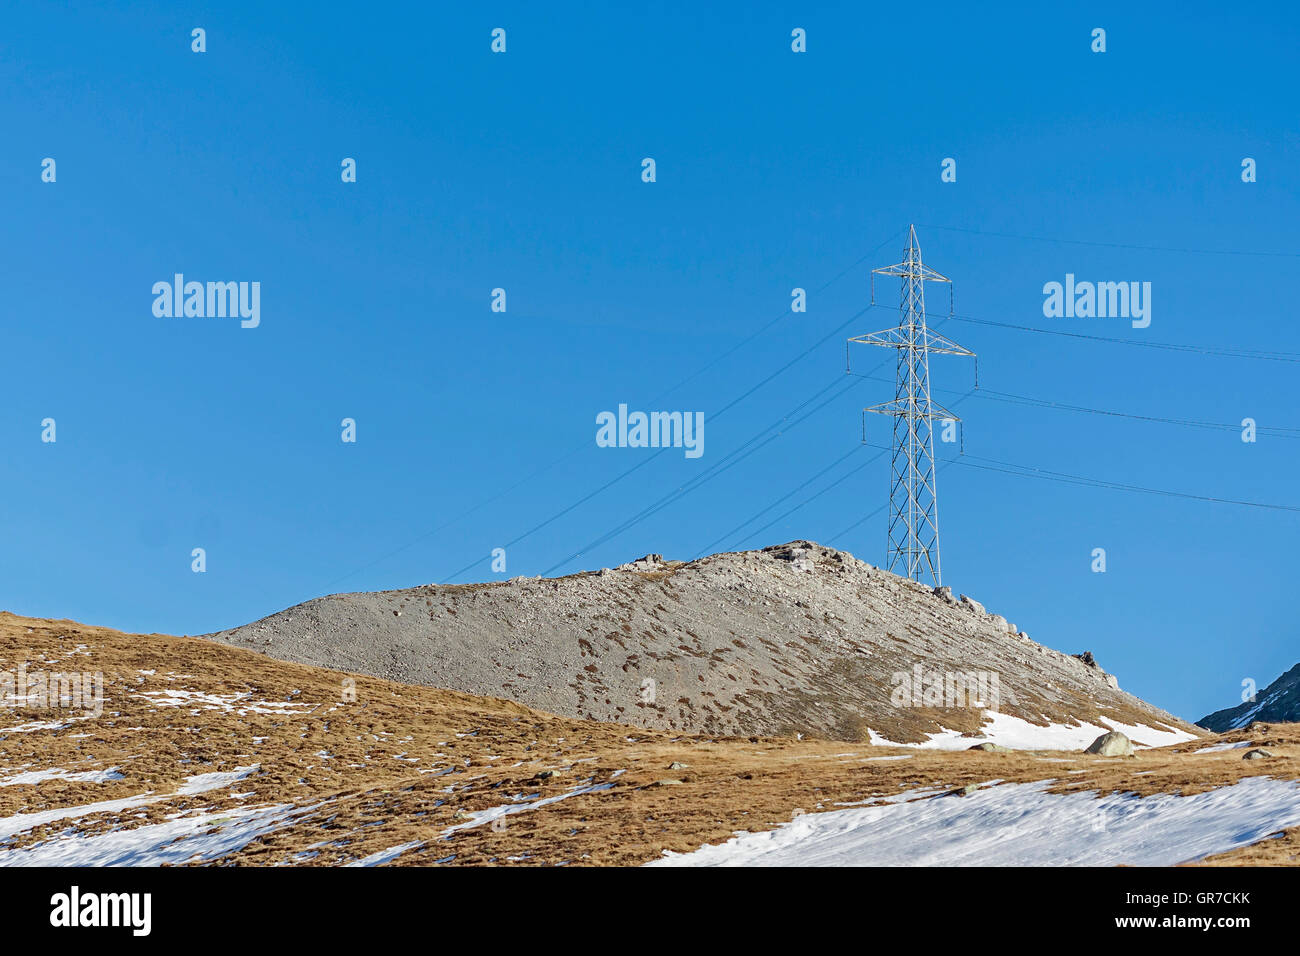 Energy Sources In Alps - Stock Image